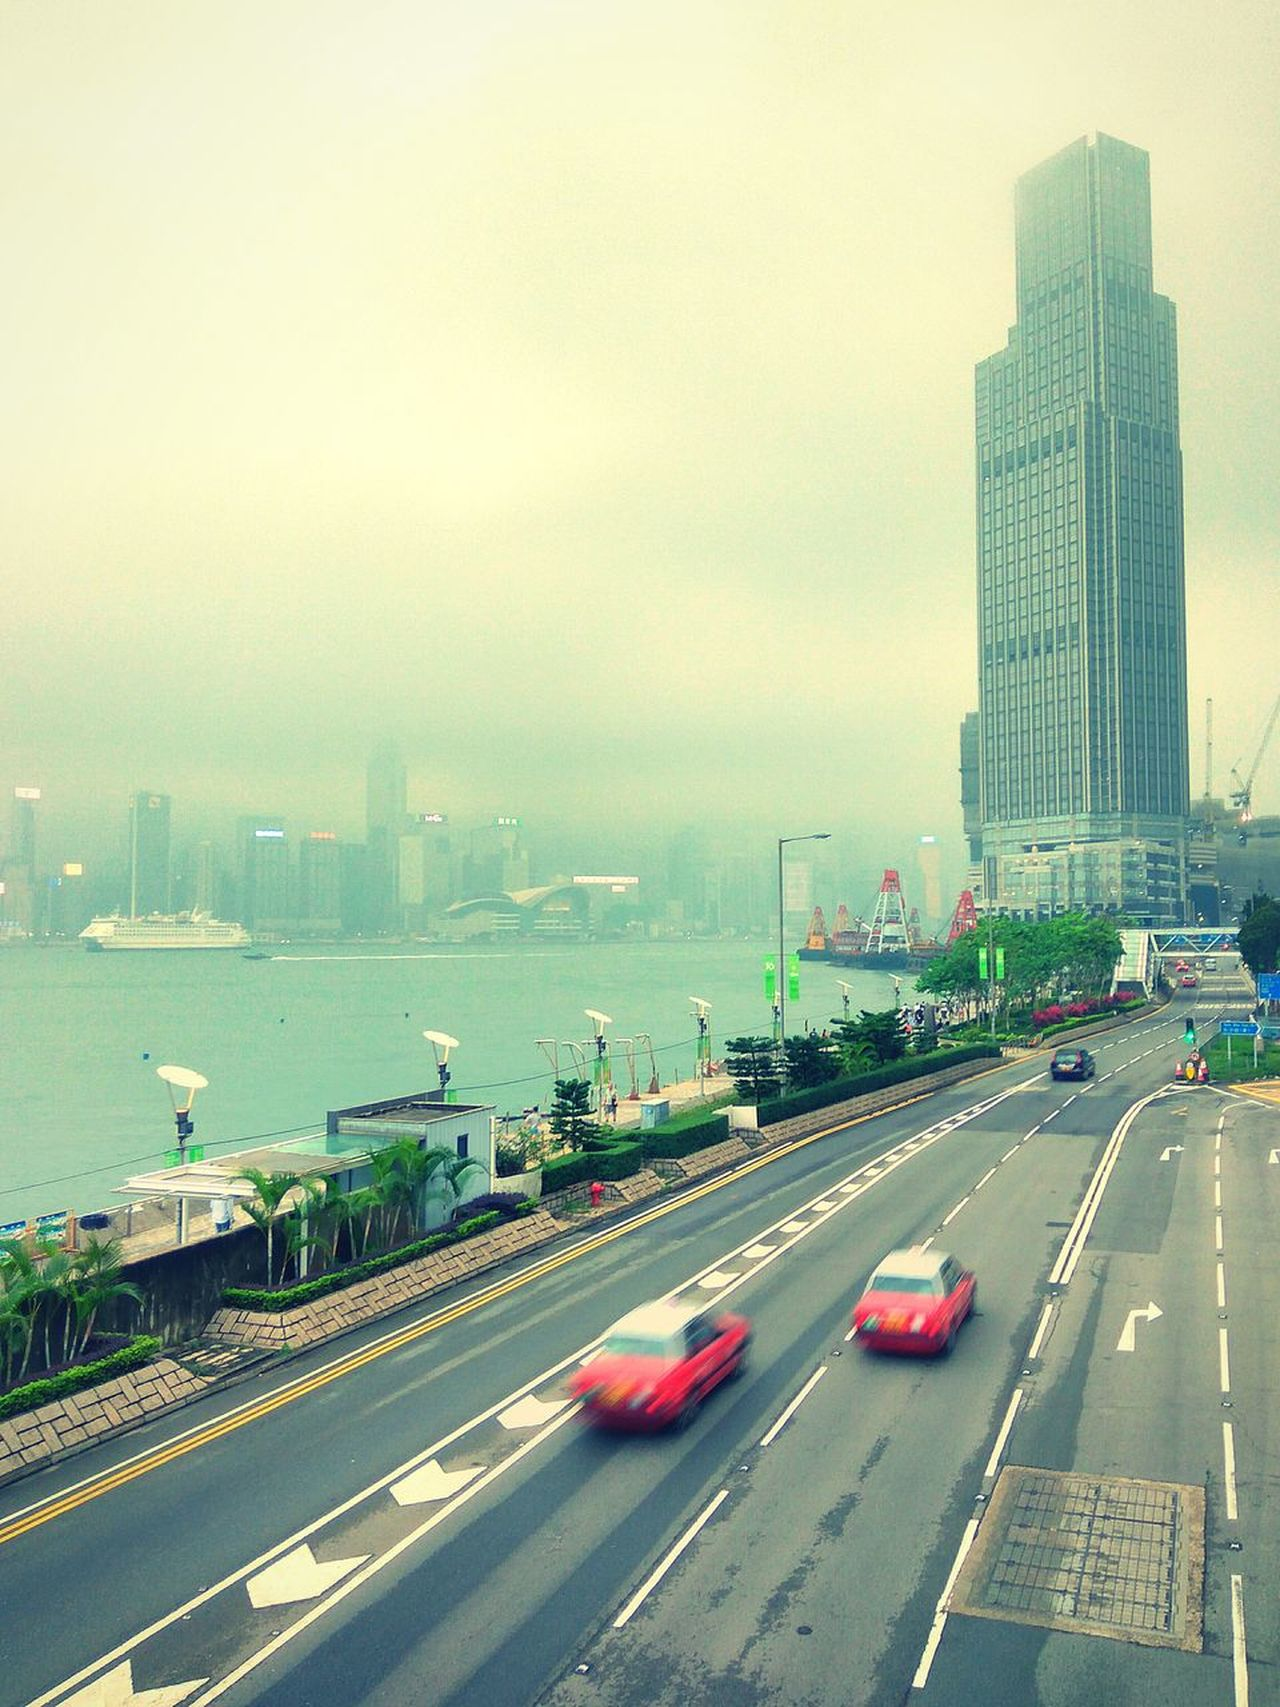 HongKong Hunghom Road HongKong Taxi Red Taxi Clouds Hongkong Island City Downtown District Skyscraper Traffic Urban Skyline Environment The Street Photographer - 2017 EyeEm Awards high angle view Day City Life Business Finance And Industry Building Exterior Transportation Car Accidents And Disasters Storm Cloud Modern Cityscape